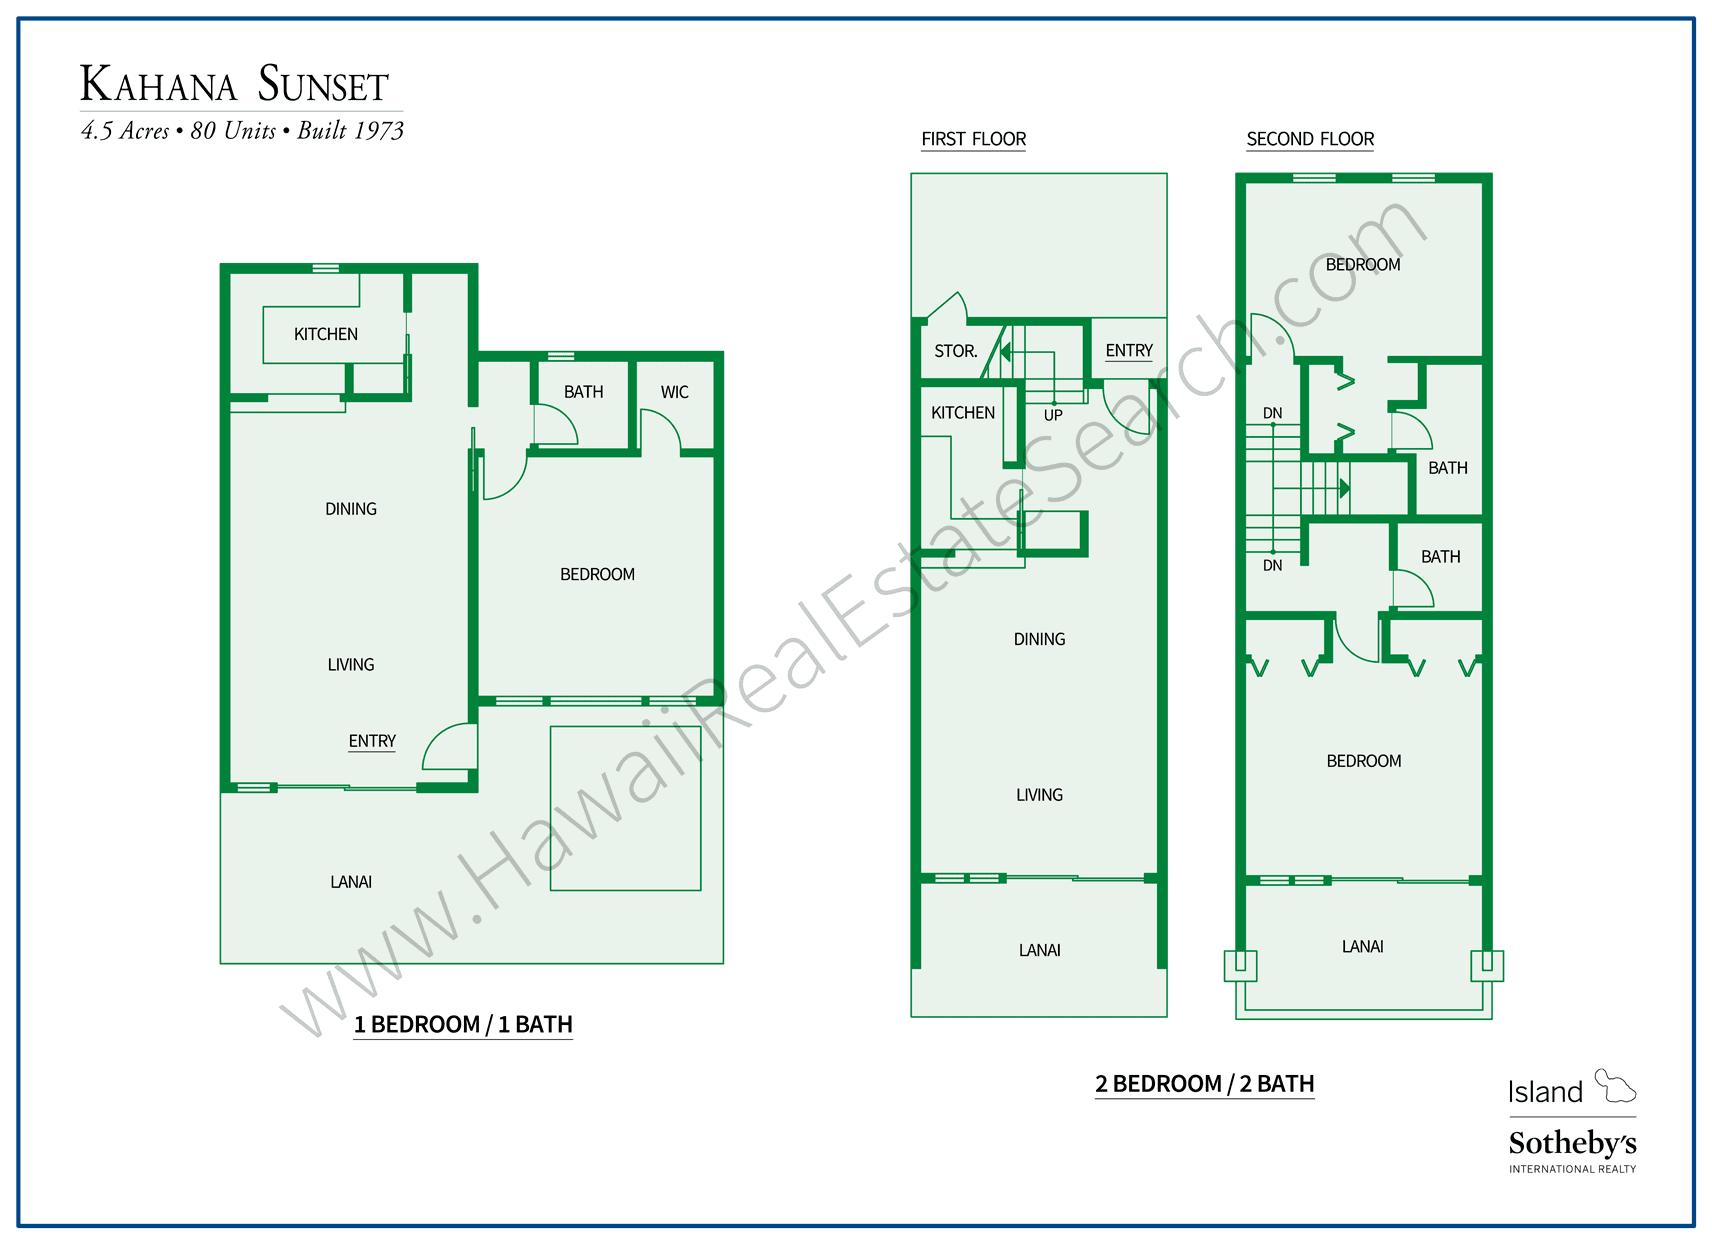 Kahana Sunset Floor Plans